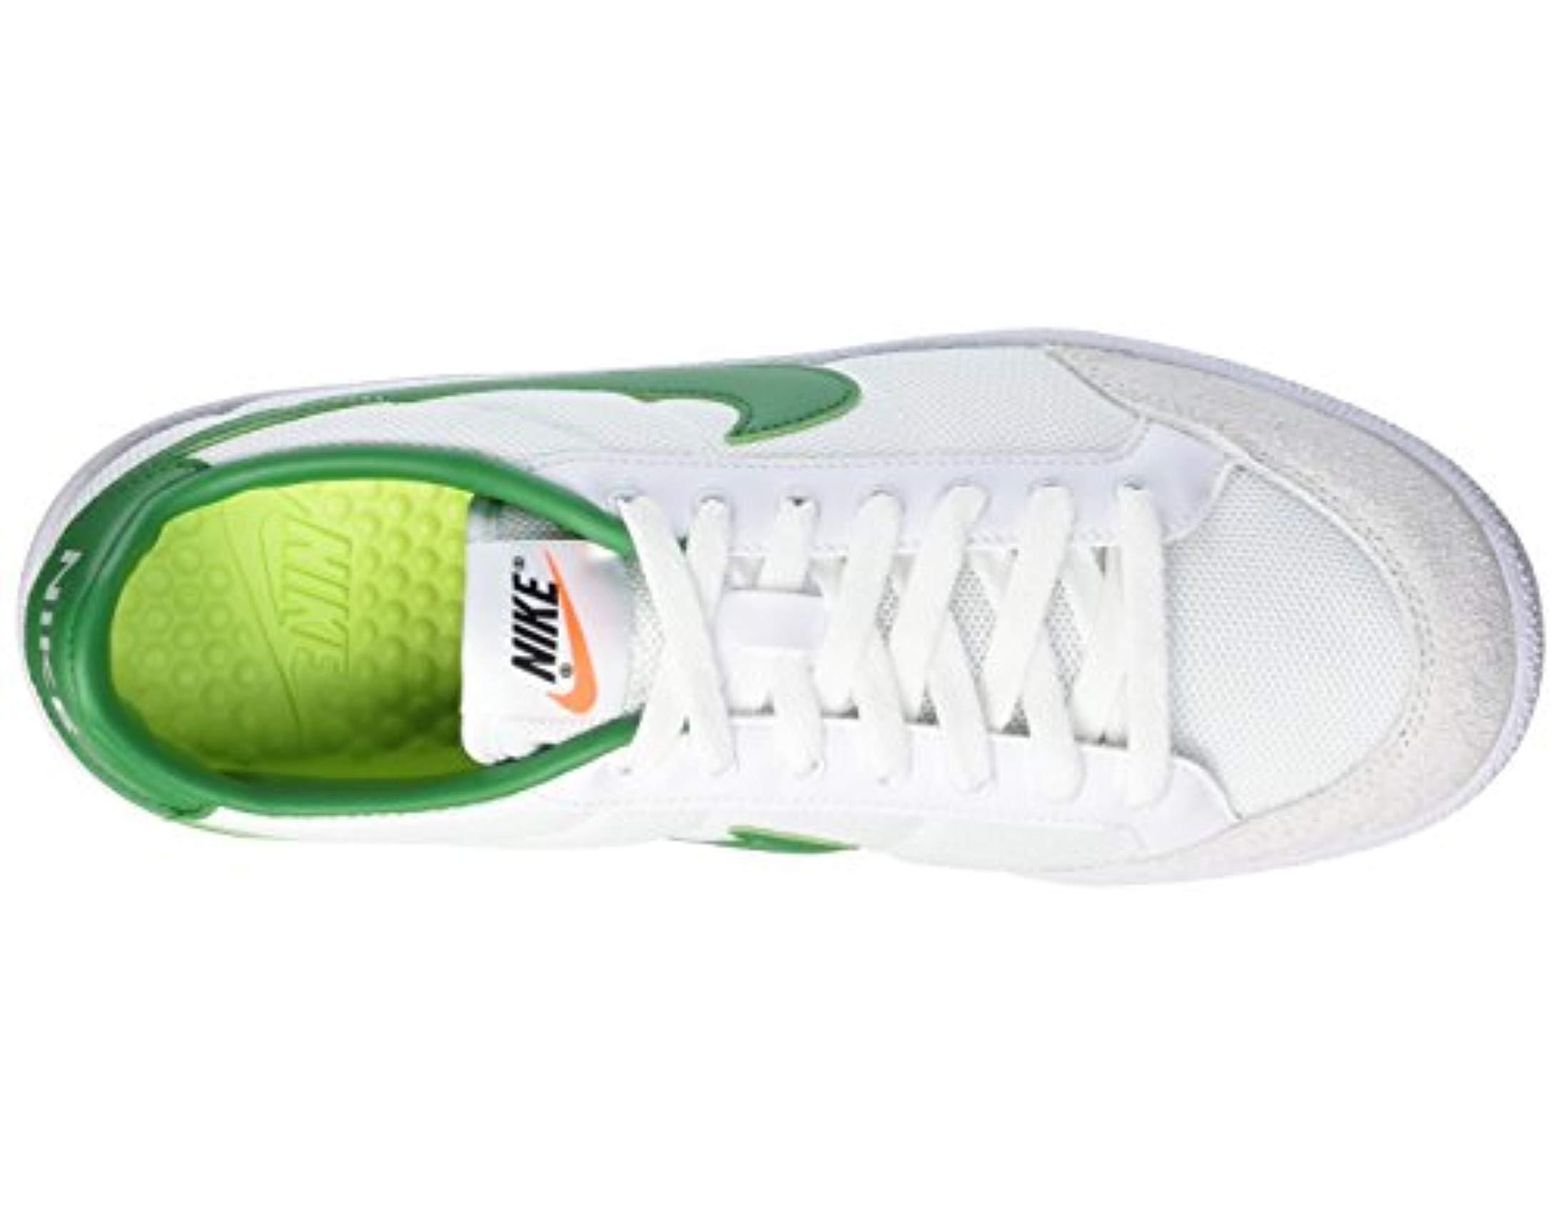 Shoes Txt Men For Lyst Dercbox Nike White In Fitness Meadow '16 35ALj4R